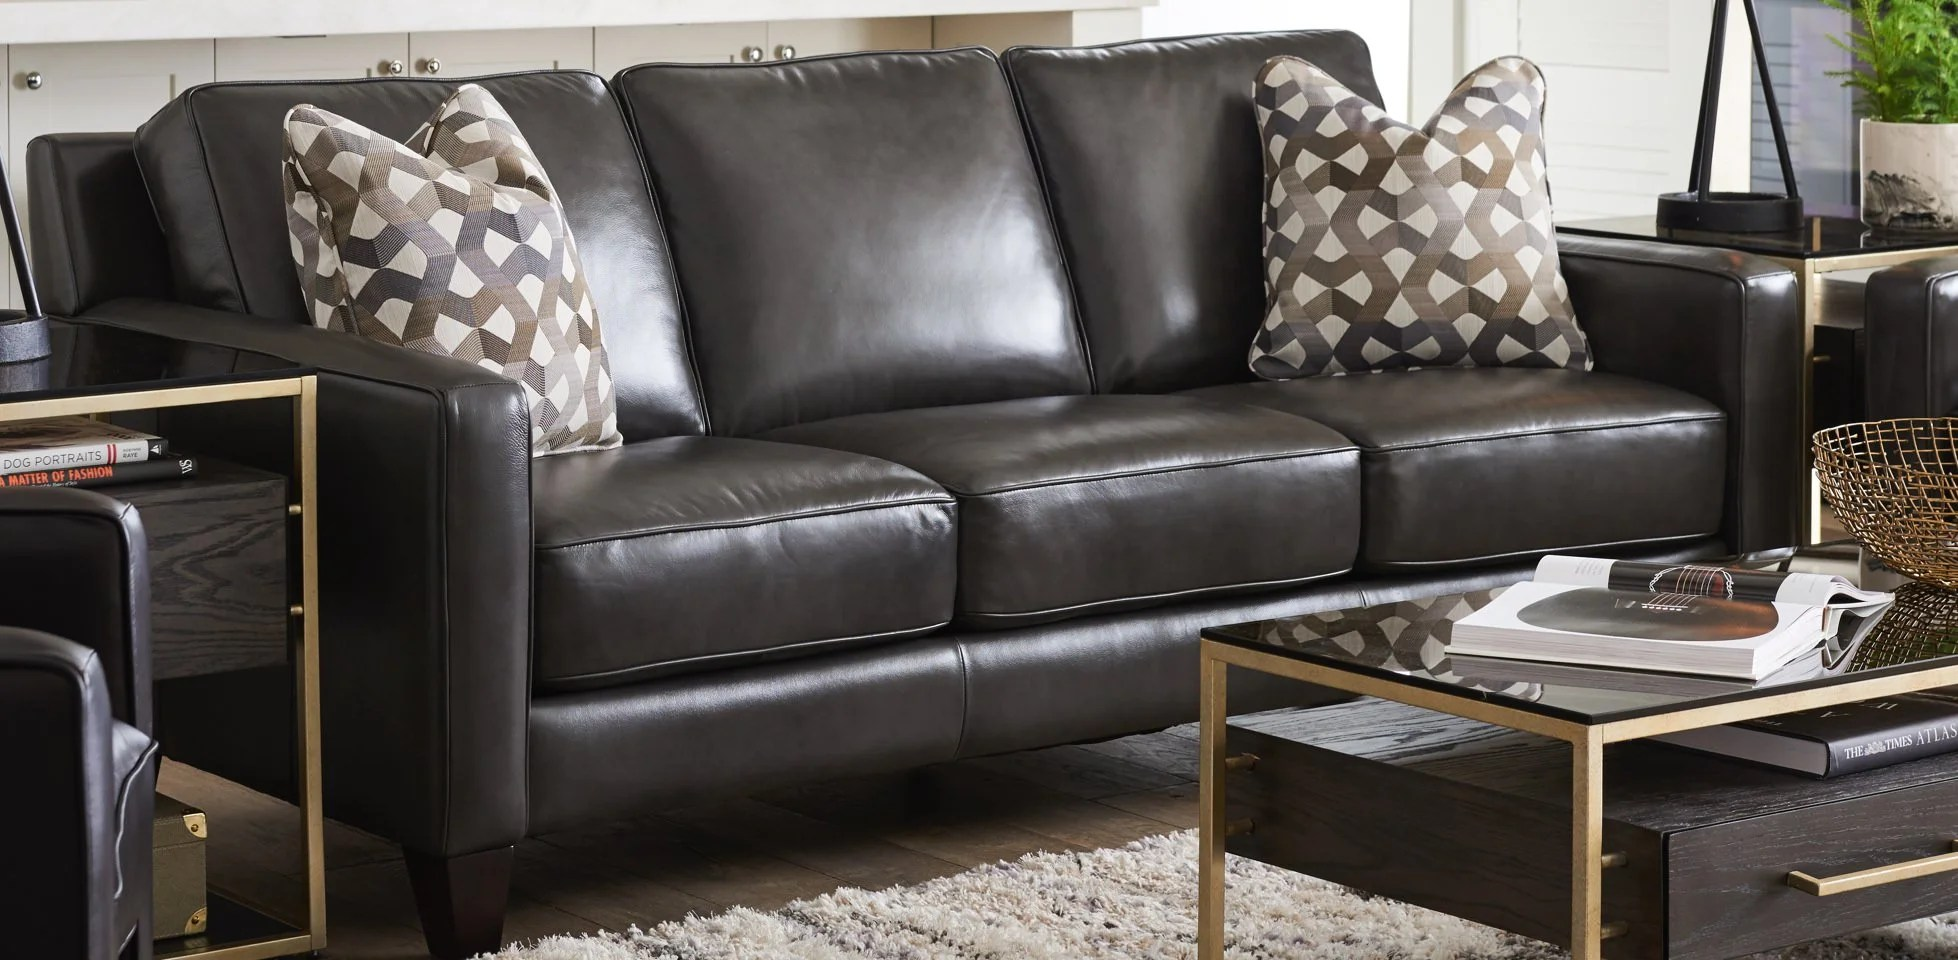 lazy boy leather living room furniture decor ideas images there s nothing quite like la z with meyer sofa